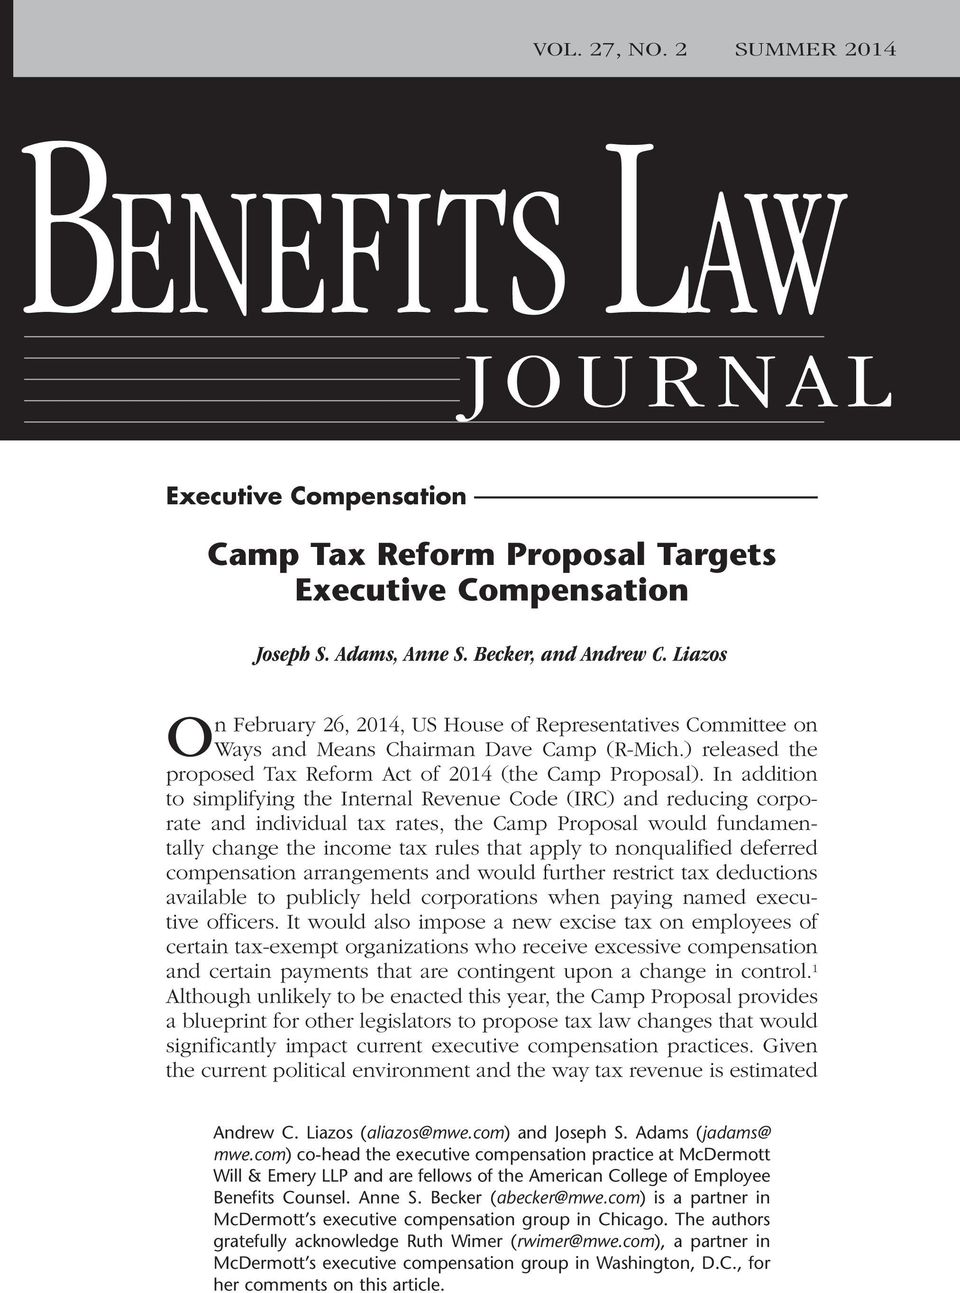 In addition to simplifying the Internal Revenue Code (IRC) and reducing corporate and individual tax rates, the Camp Proposal would fundamentally change the income tax rules that apply to